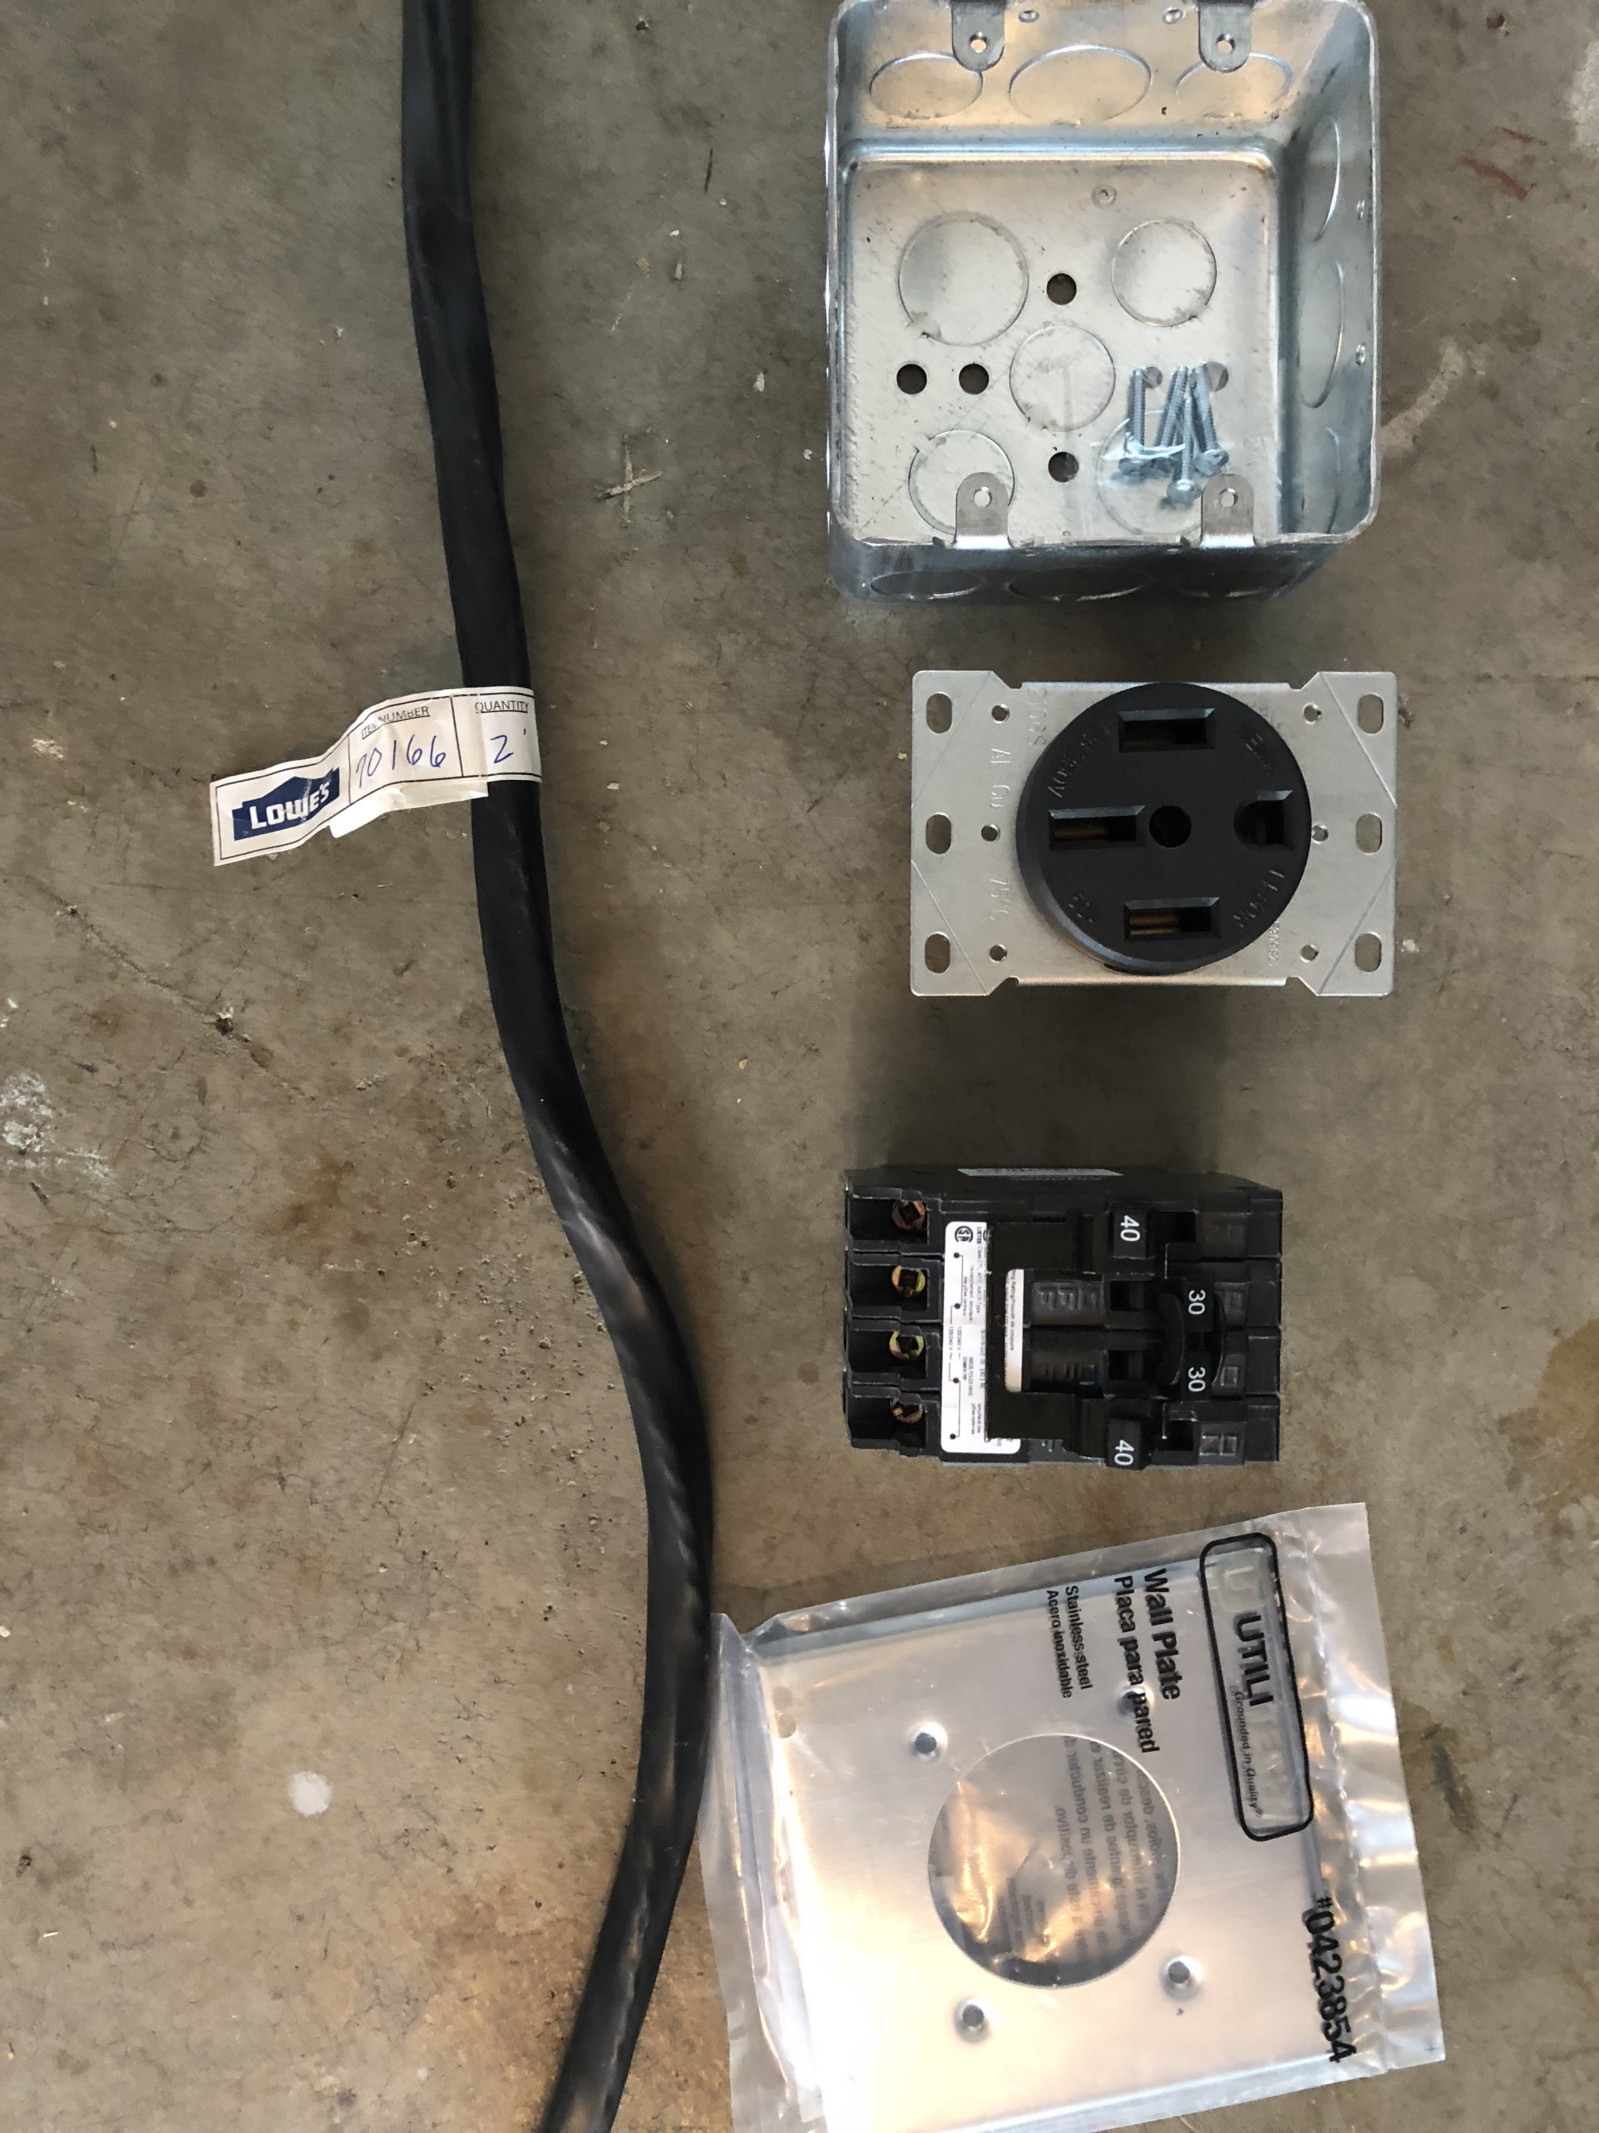 50 Amp Breaker 3 Wire Diagram Charging At Tesla Model 3 32a With 220 Volts